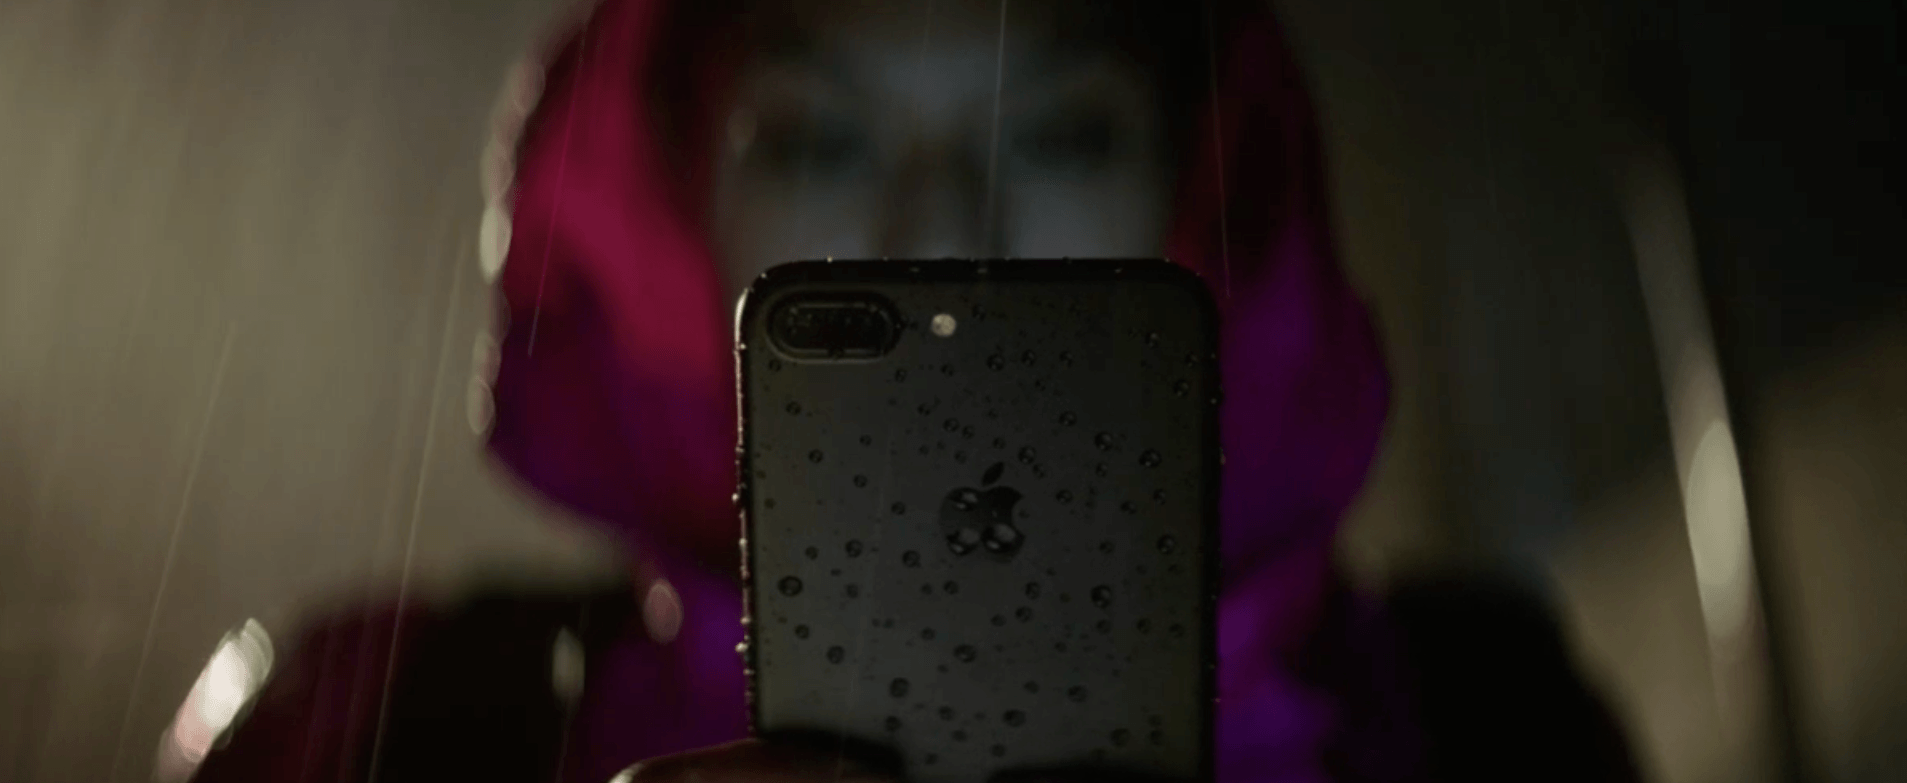 The iPhone 7 is water resistant (Apple)